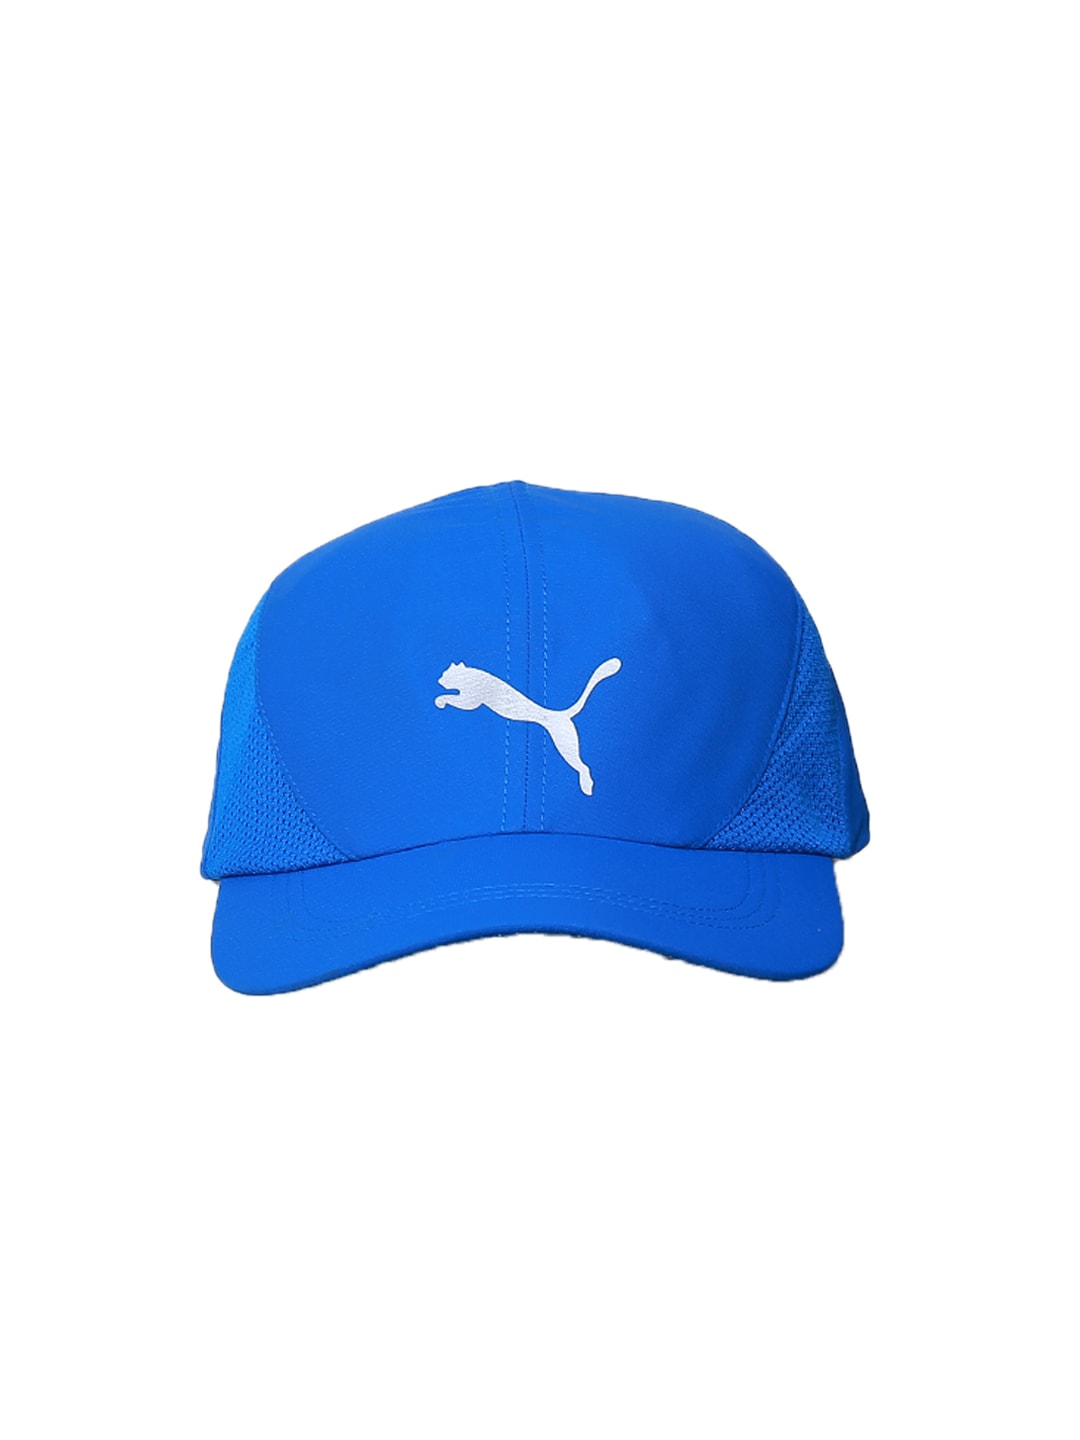 d717ebe818a Puma White Caps - Buy Puma White Caps online in India